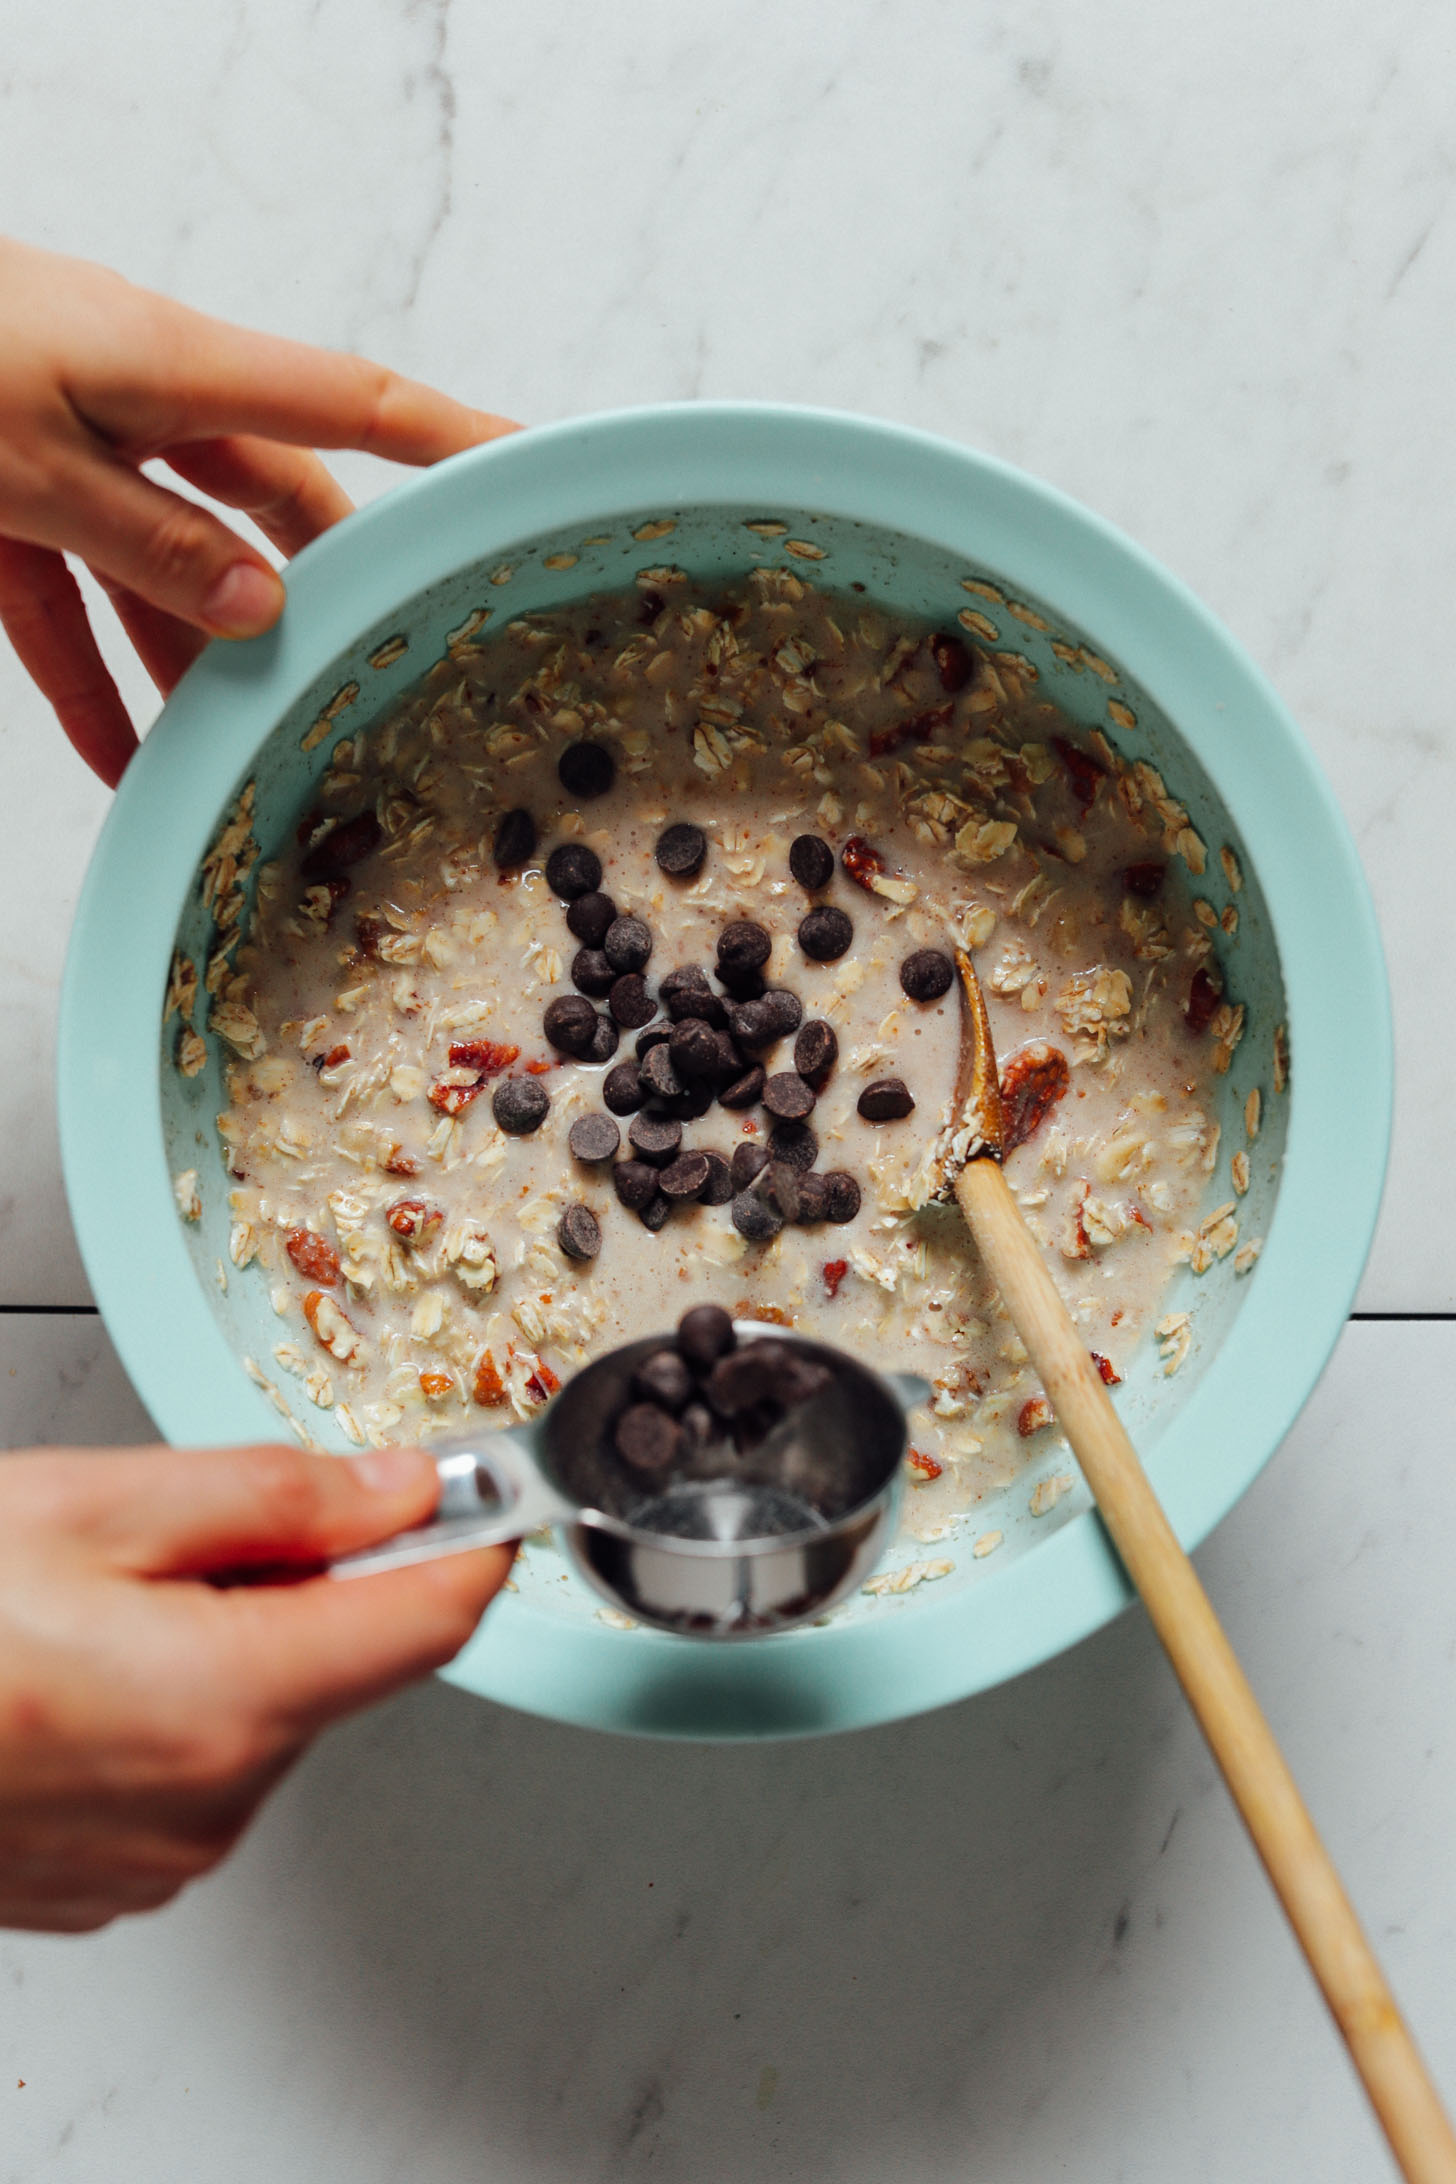 Overhead image of banana oatmeal in a blue bowl with chocolate chips being sprinkled on top